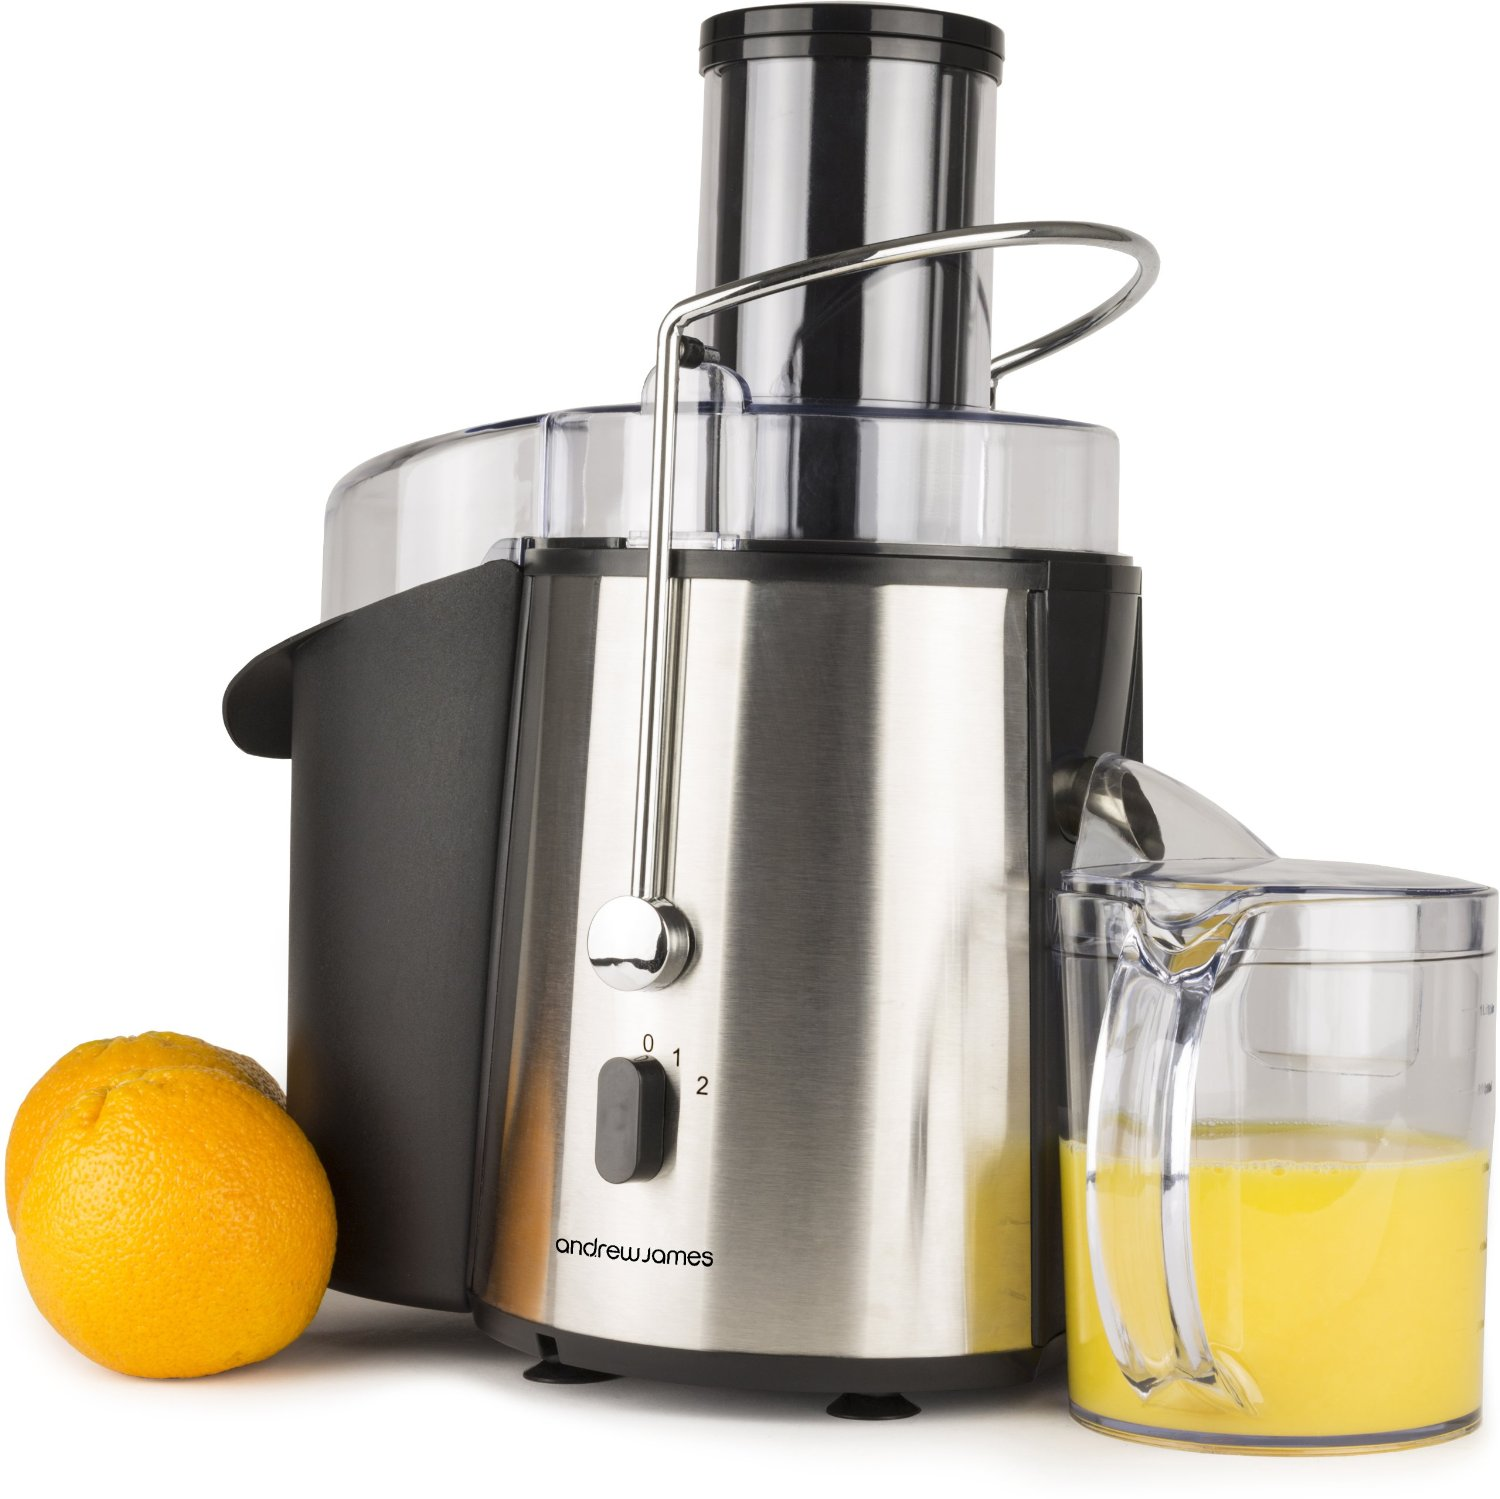 Andrew James Slow Masticating Juicer Reviews : Andrew James Professional Whole Fruit Power Juicer Review iFancy Shopping